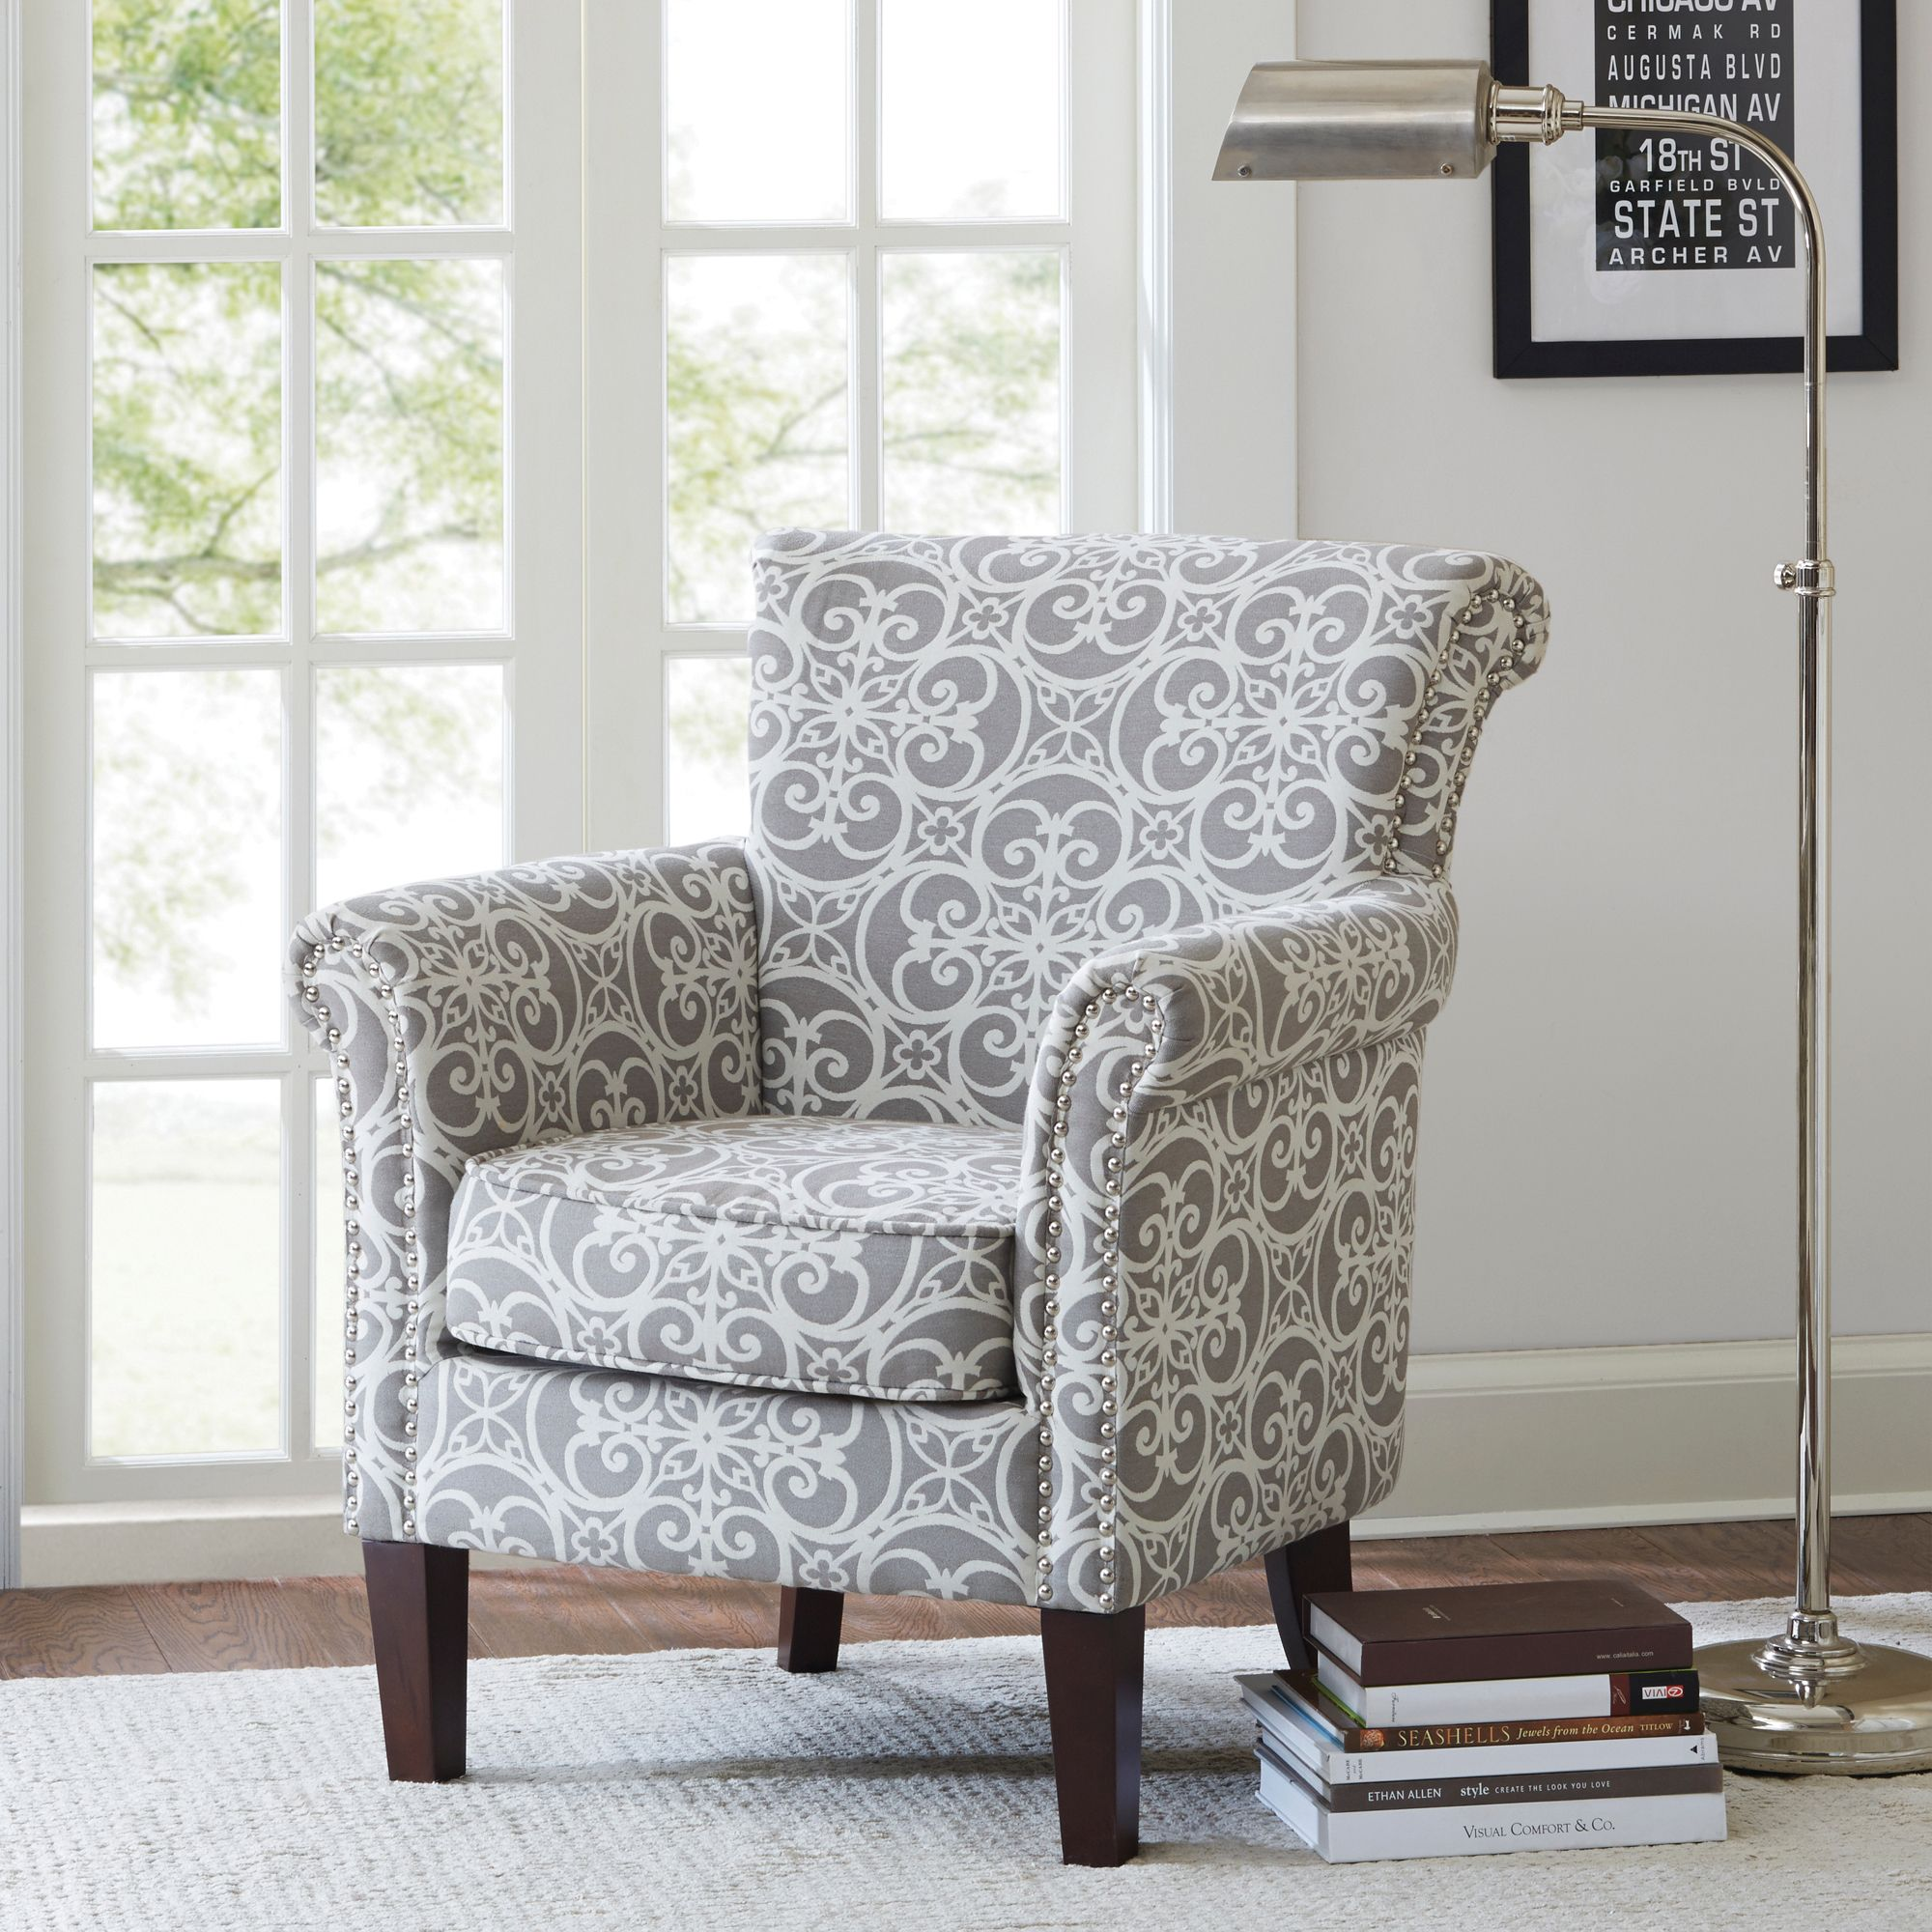 Brooke Accent Chair Club Chairs Living Room Chairs Furniture #overstuffed #living #room #chairs